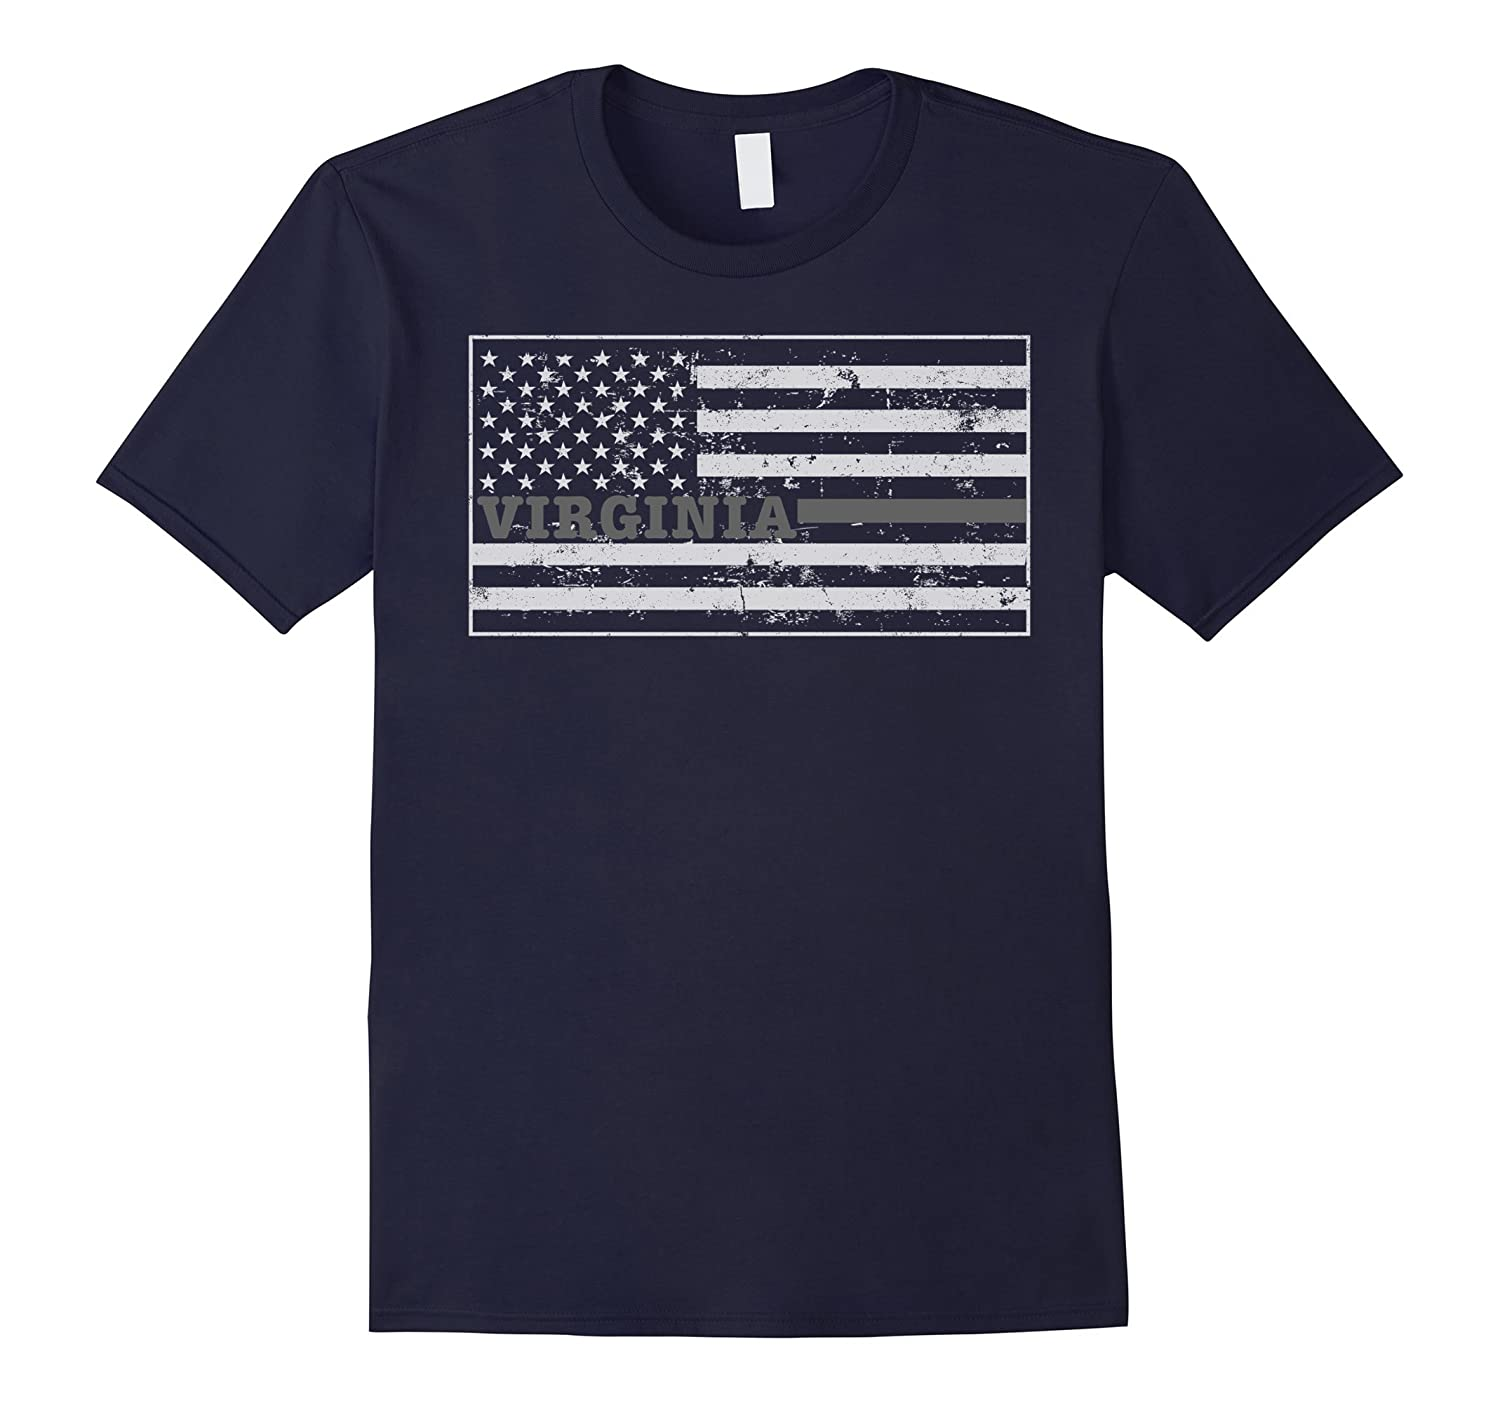 Virginia Shirt Correction Officer Shirt Prison Guard Shirt-TH